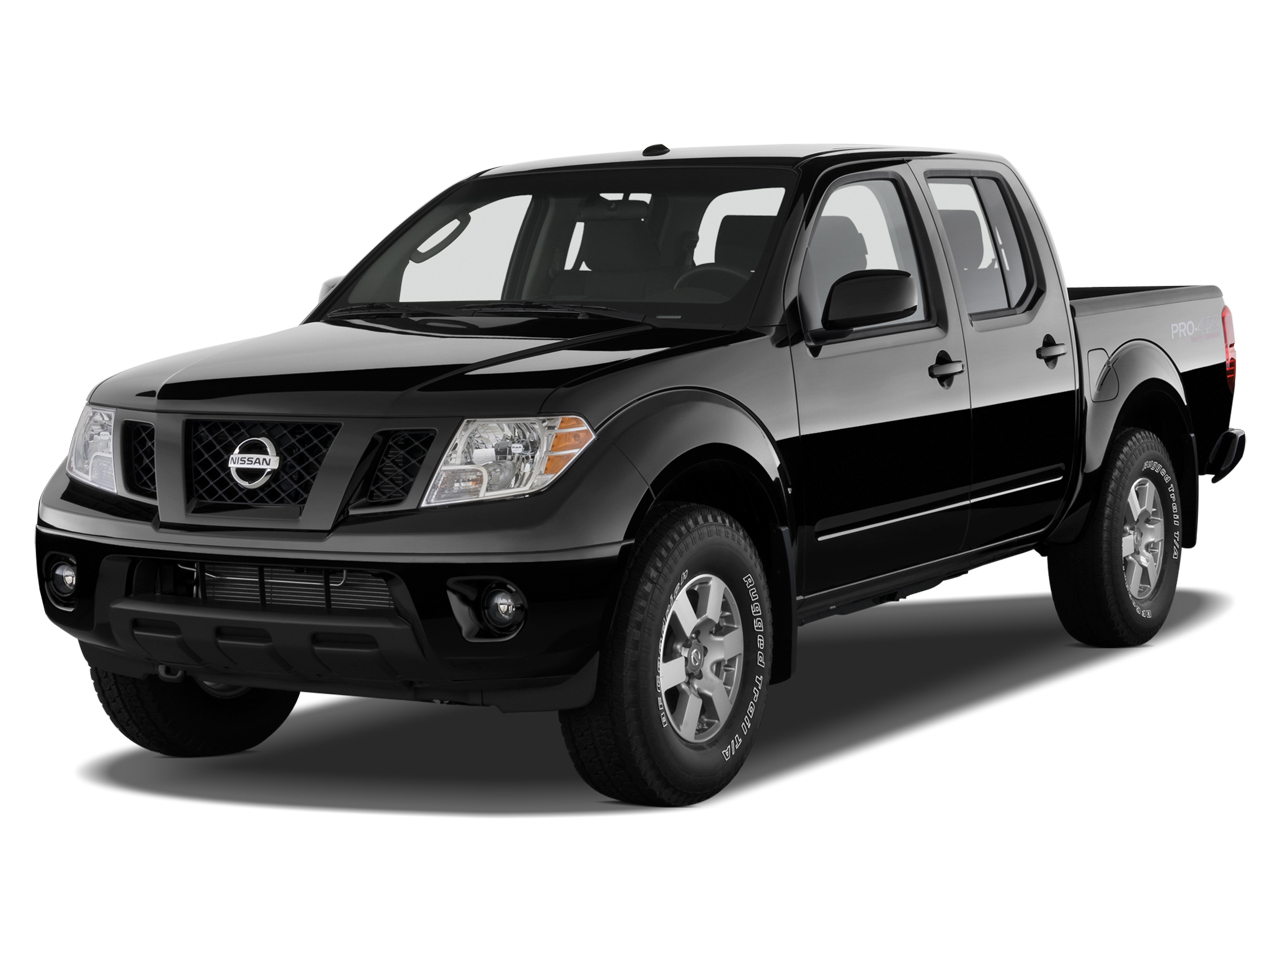 2012 nissan frontier review ratings specs prices and photos the car connection. Black Bedroom Furniture Sets. Home Design Ideas